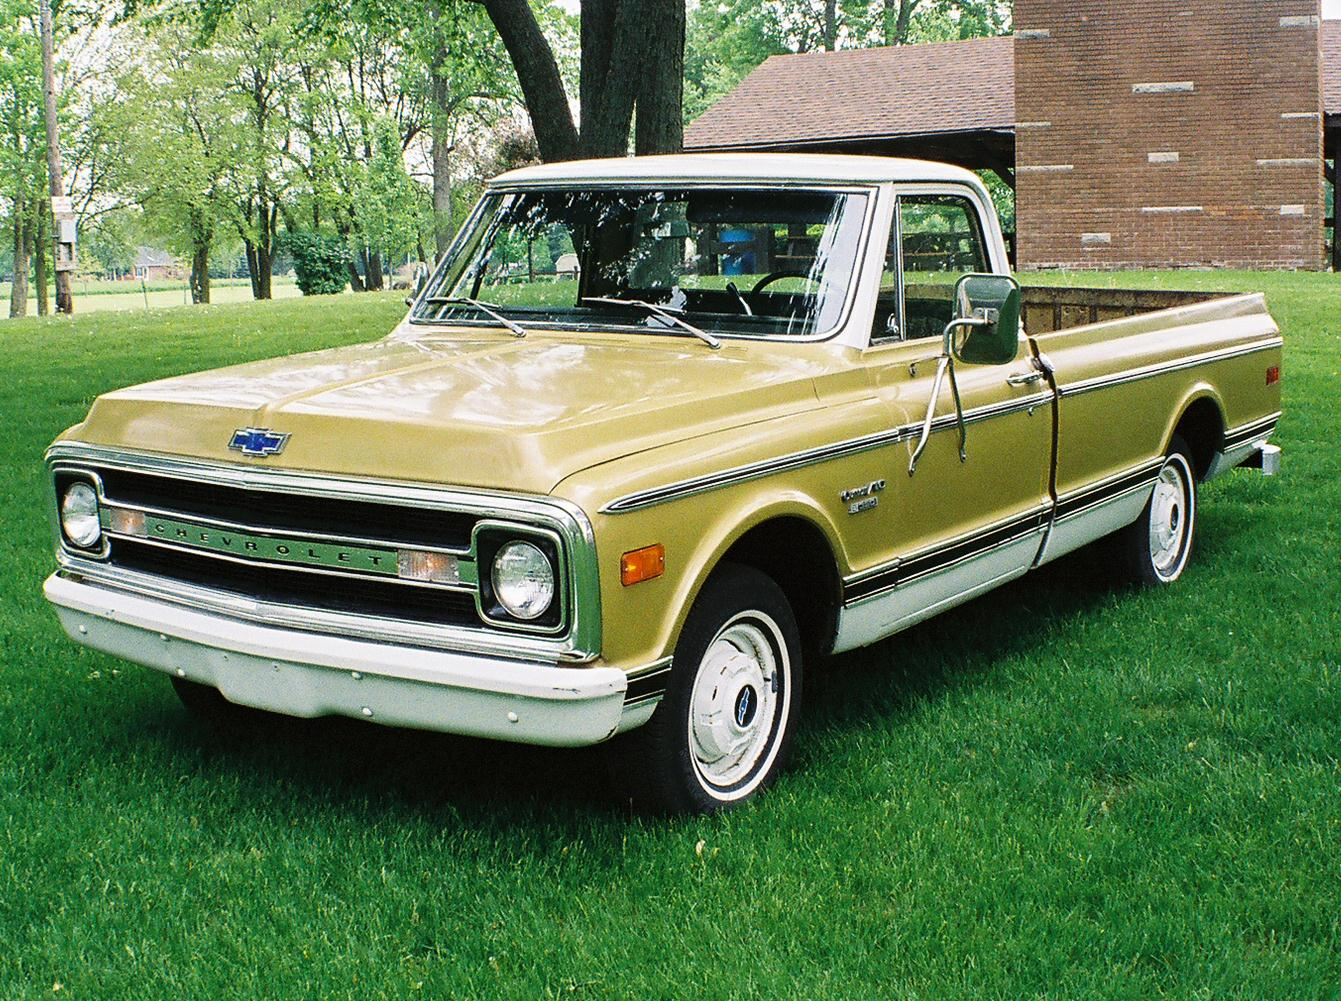 A 1970 Chevy C10 that Went From High School Ride to ...